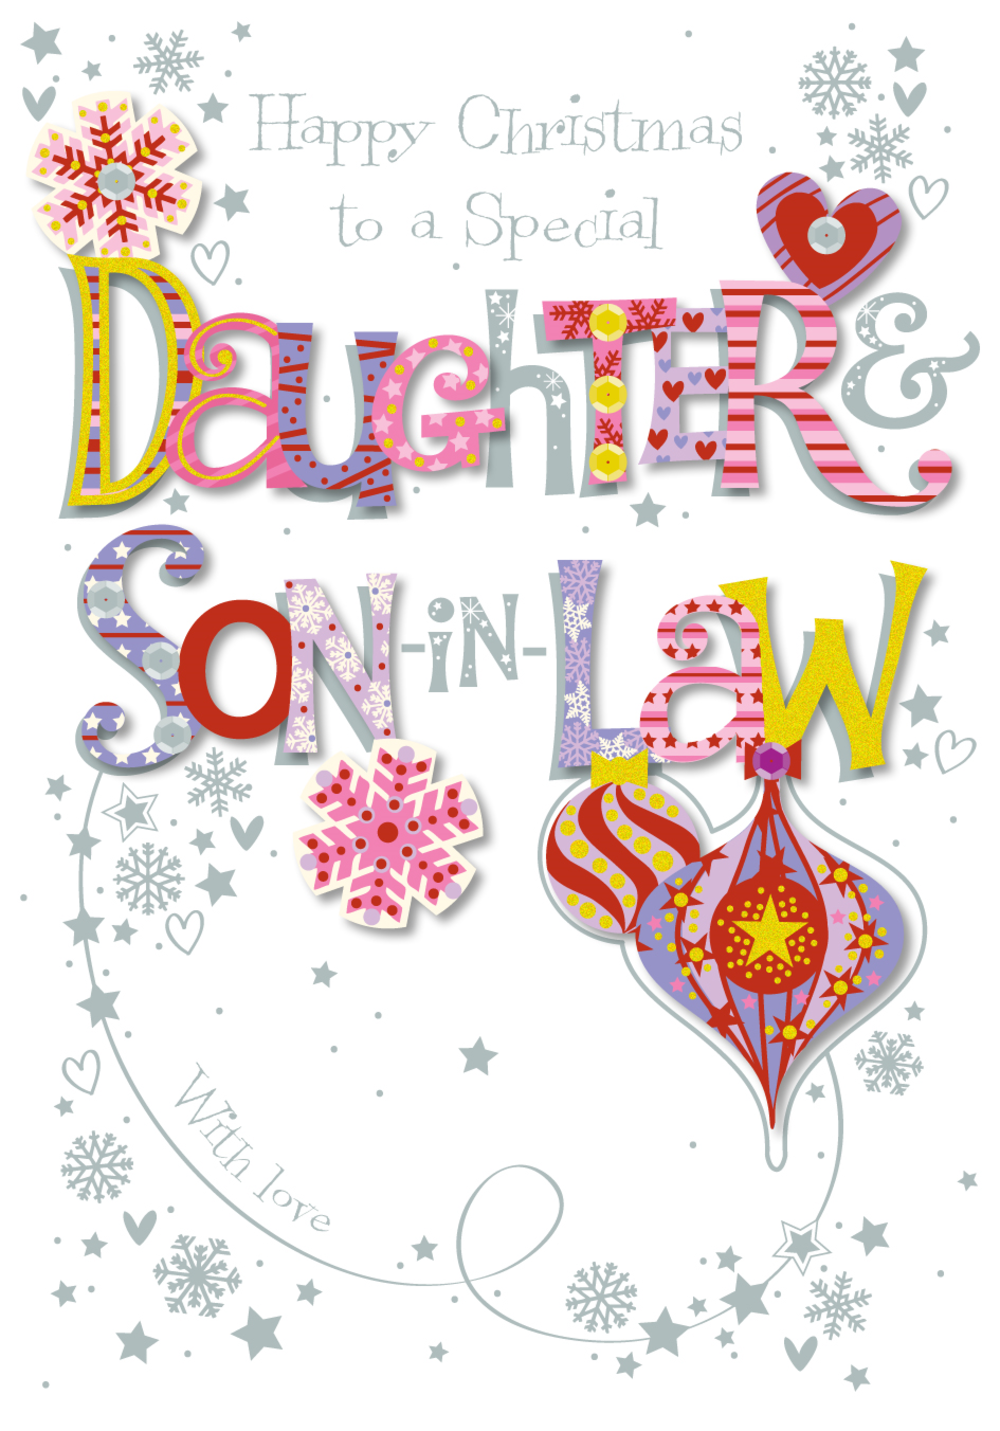 Daughter & Son-In-Law Christmas Greeting Card